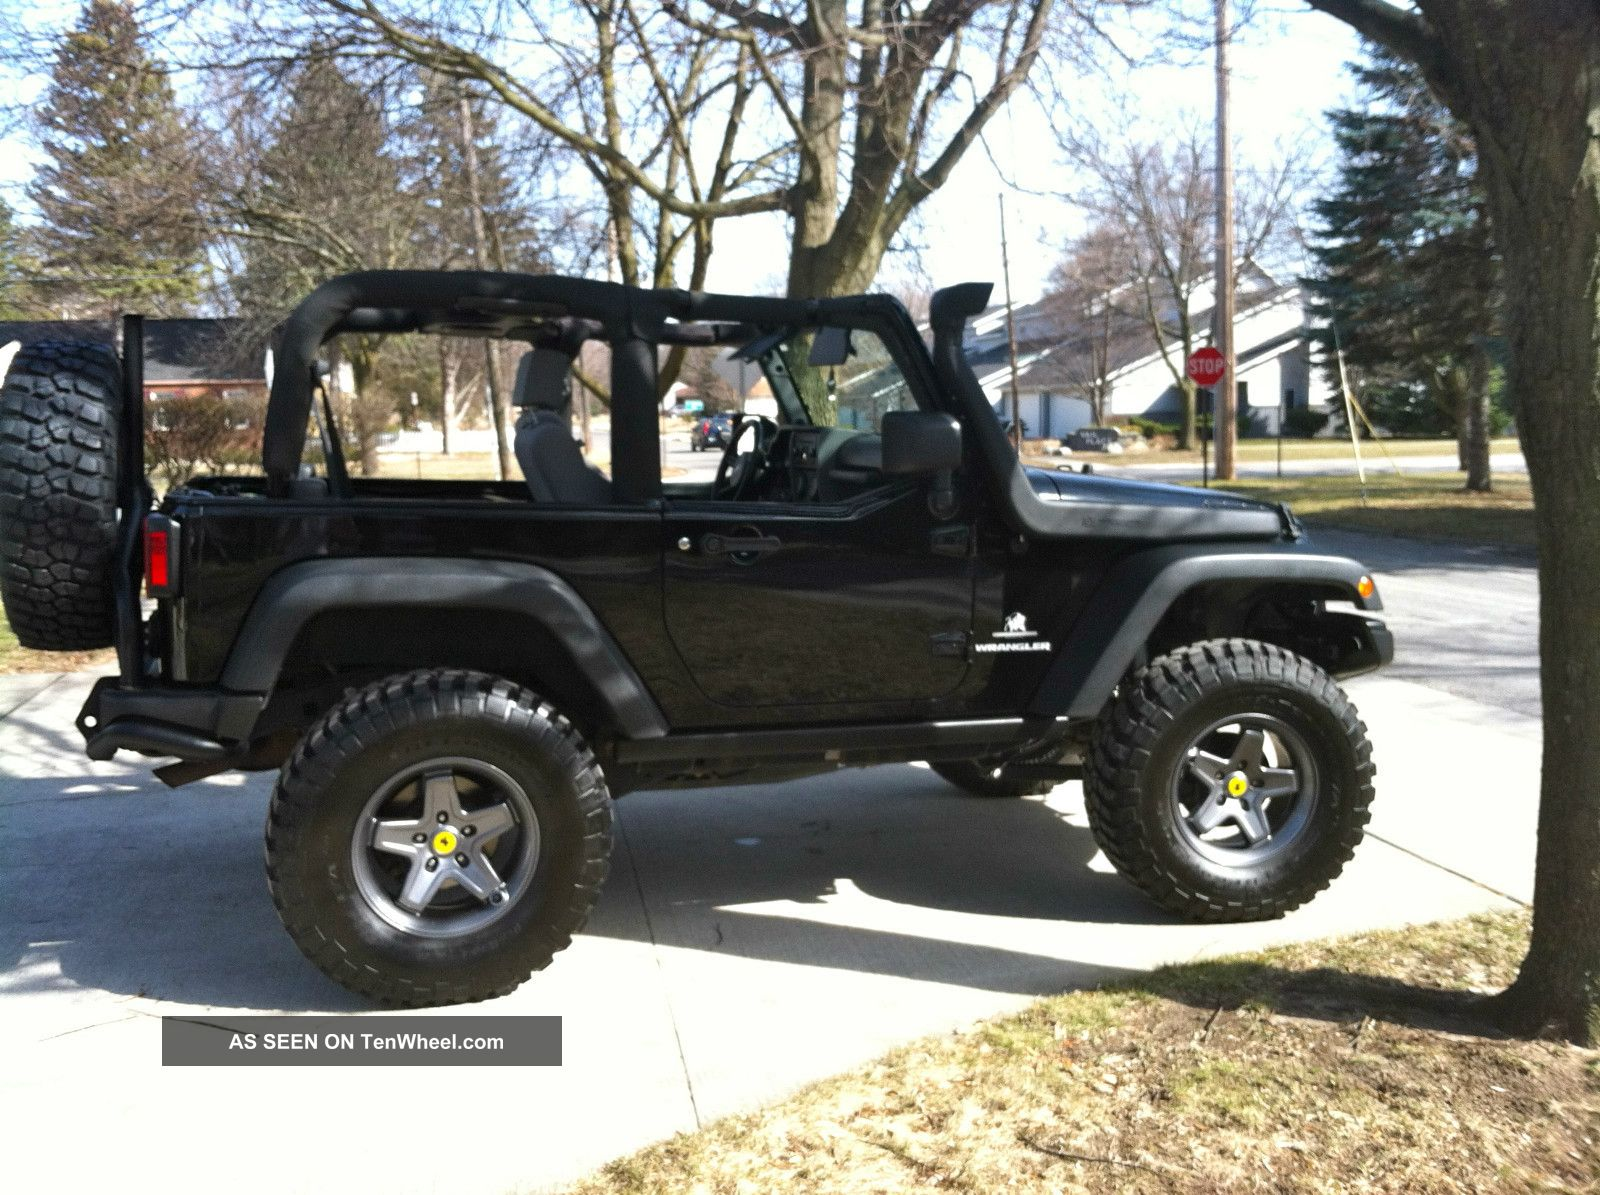 2008 aev jeep wrangler rubicon sport utility 2 door 3 8l. Black Bedroom Furniture Sets. Home Design Ideas